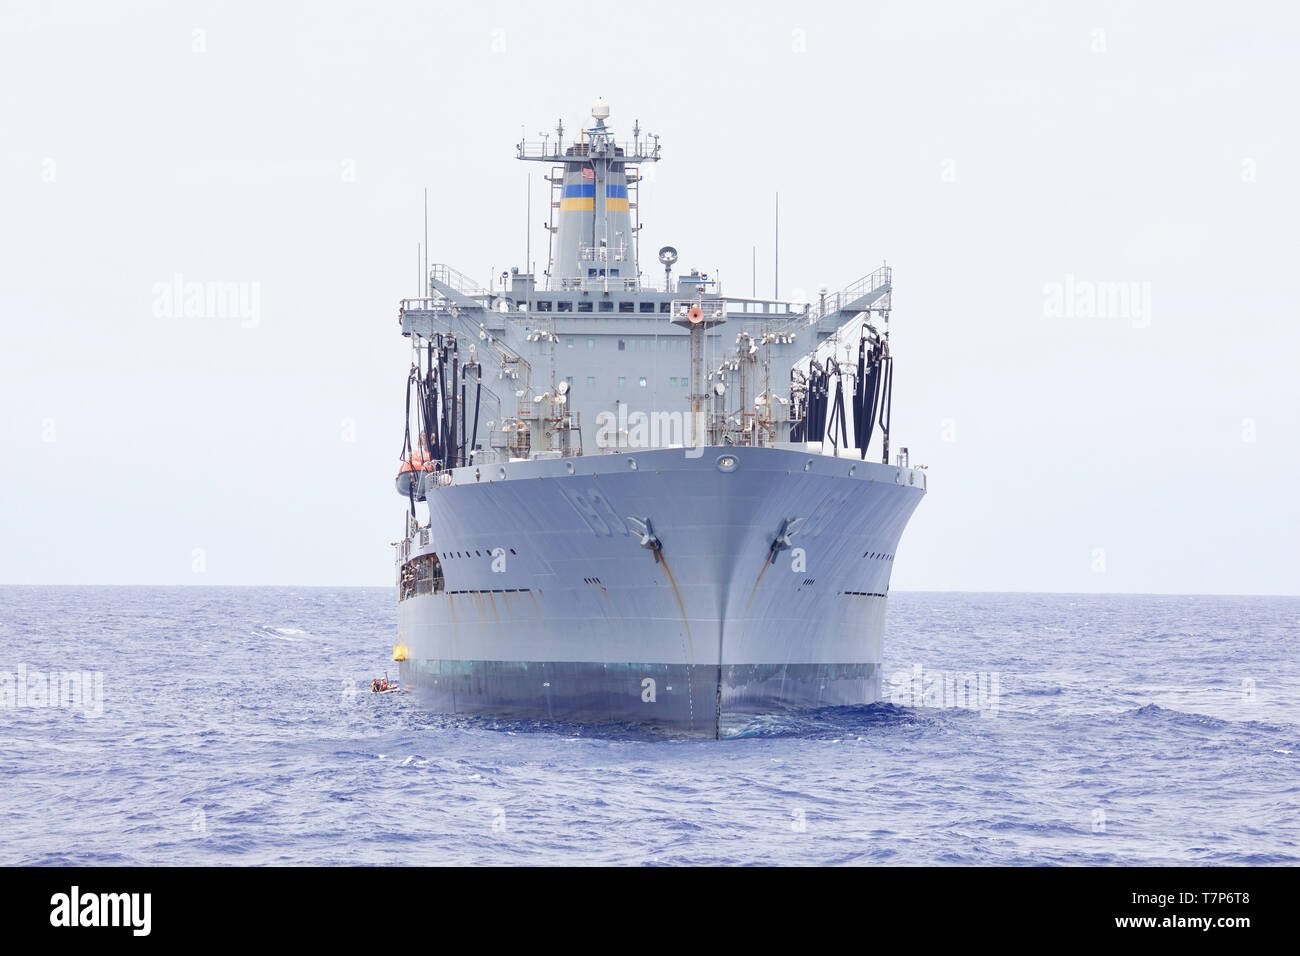 190505-N-AD347-1008 South China Sea (May 5, 2019)   Sailors from the the Avenger-class mine countermeasures ship USS Pioneer (MCM 9) wait along side the fleet replenishment oiler USNS Walter S. Diehl (T-AO 193) for cargo during a replenishment-at-sea. Pioneer, part of Mine Countermeasures Squadron 7, is operating in the U.S. 7th Fleet area of operations to enhance interoperability with partners and serve as a ready-response platform for contingency operations. (U.S. Navy photo by Lt. j.g. Alexander Fairbanks) - Stock Image